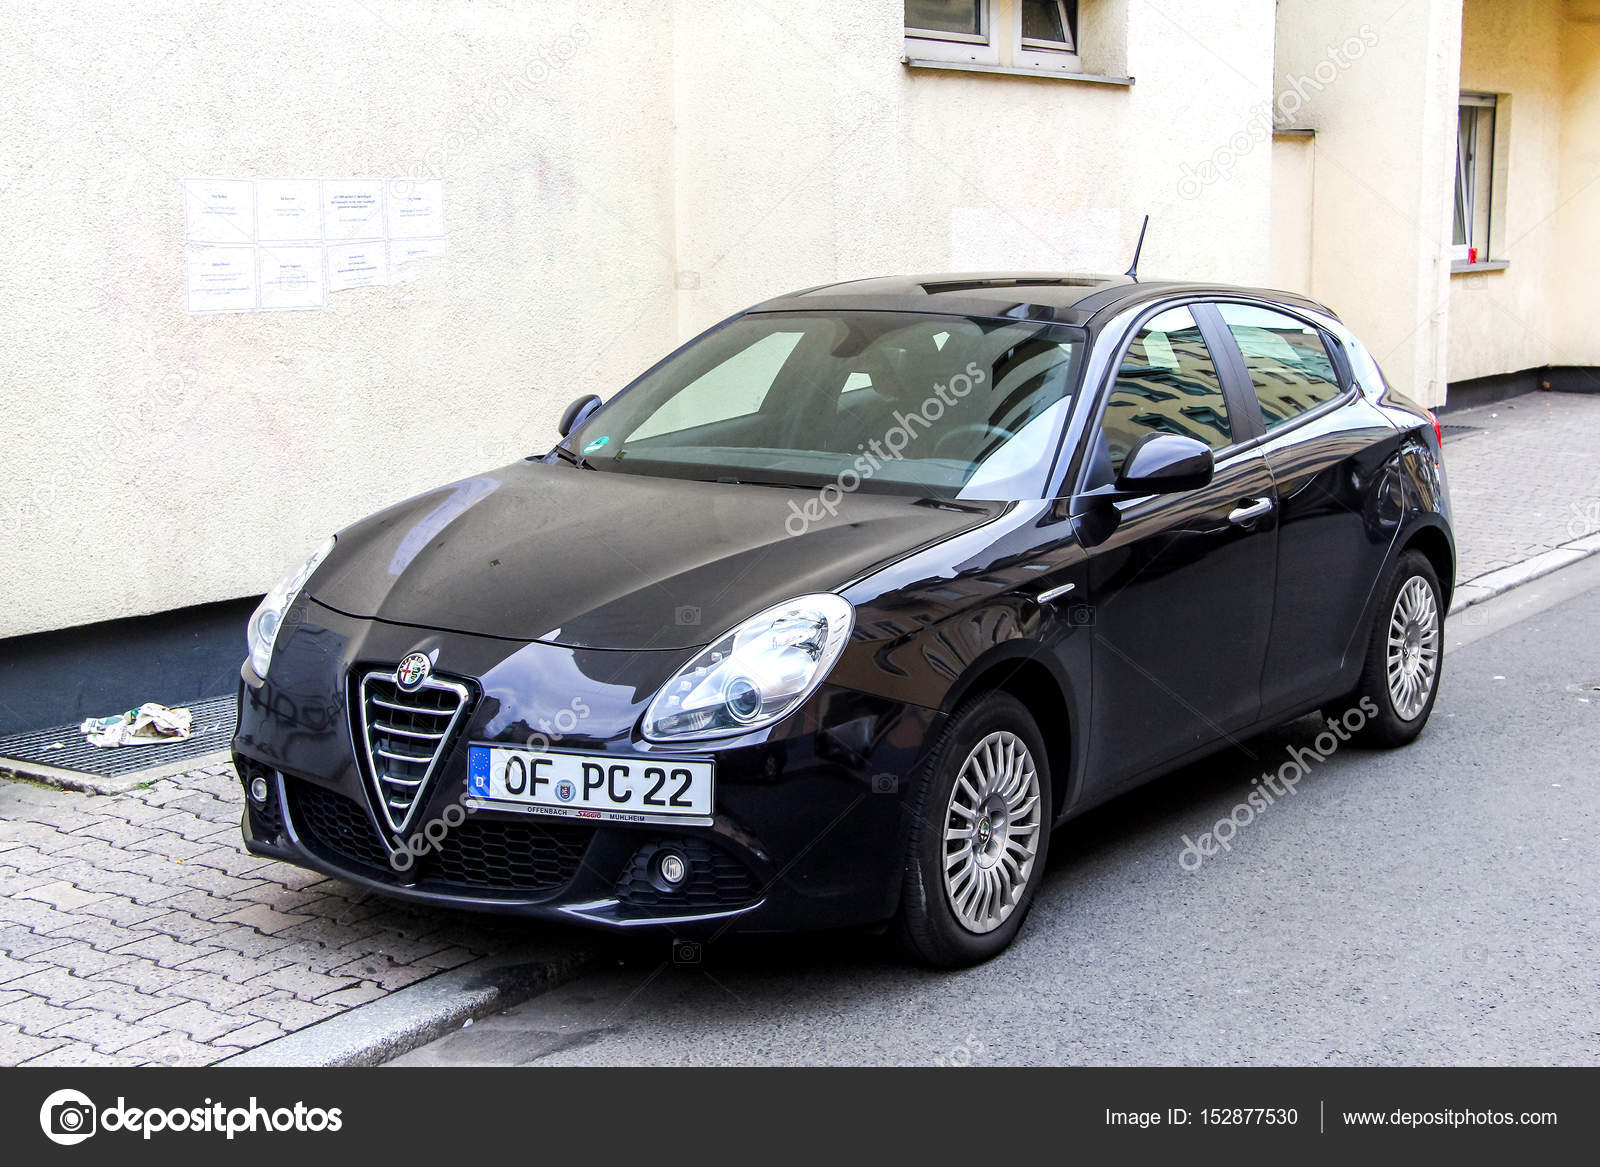 alfa romeo giulietta – stock editorial photo © artzzz #152877530